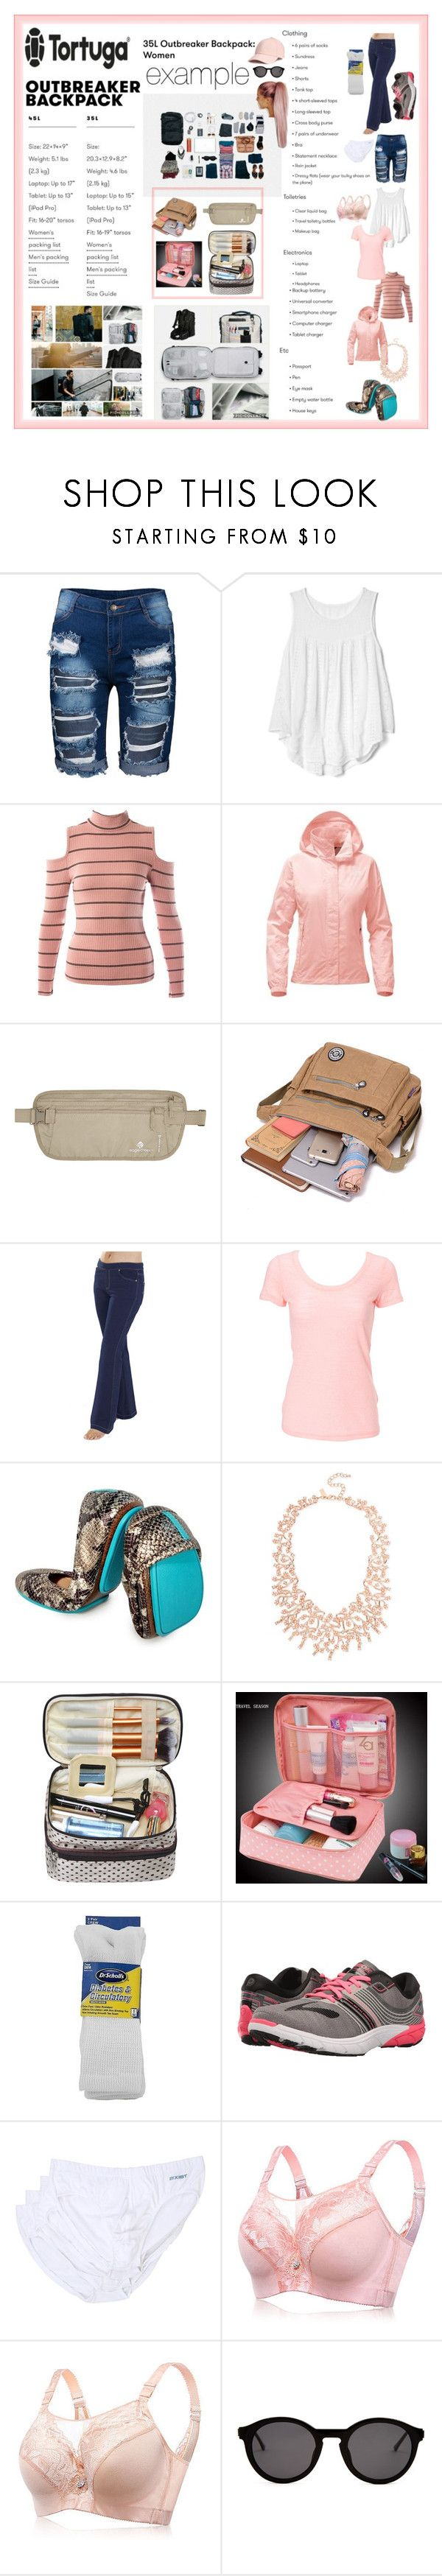 """""""a one carry on travel packer! nice!"""" by caroline-buster-brown ❤ liked on Polyvore featuring Gap, Sans Souci, The North Face, Eagle Creek, Simplex Apparel, INC International Concepts, Dr. Scholl's, Brooks, 2(x)ist and Thierry Lasry"""